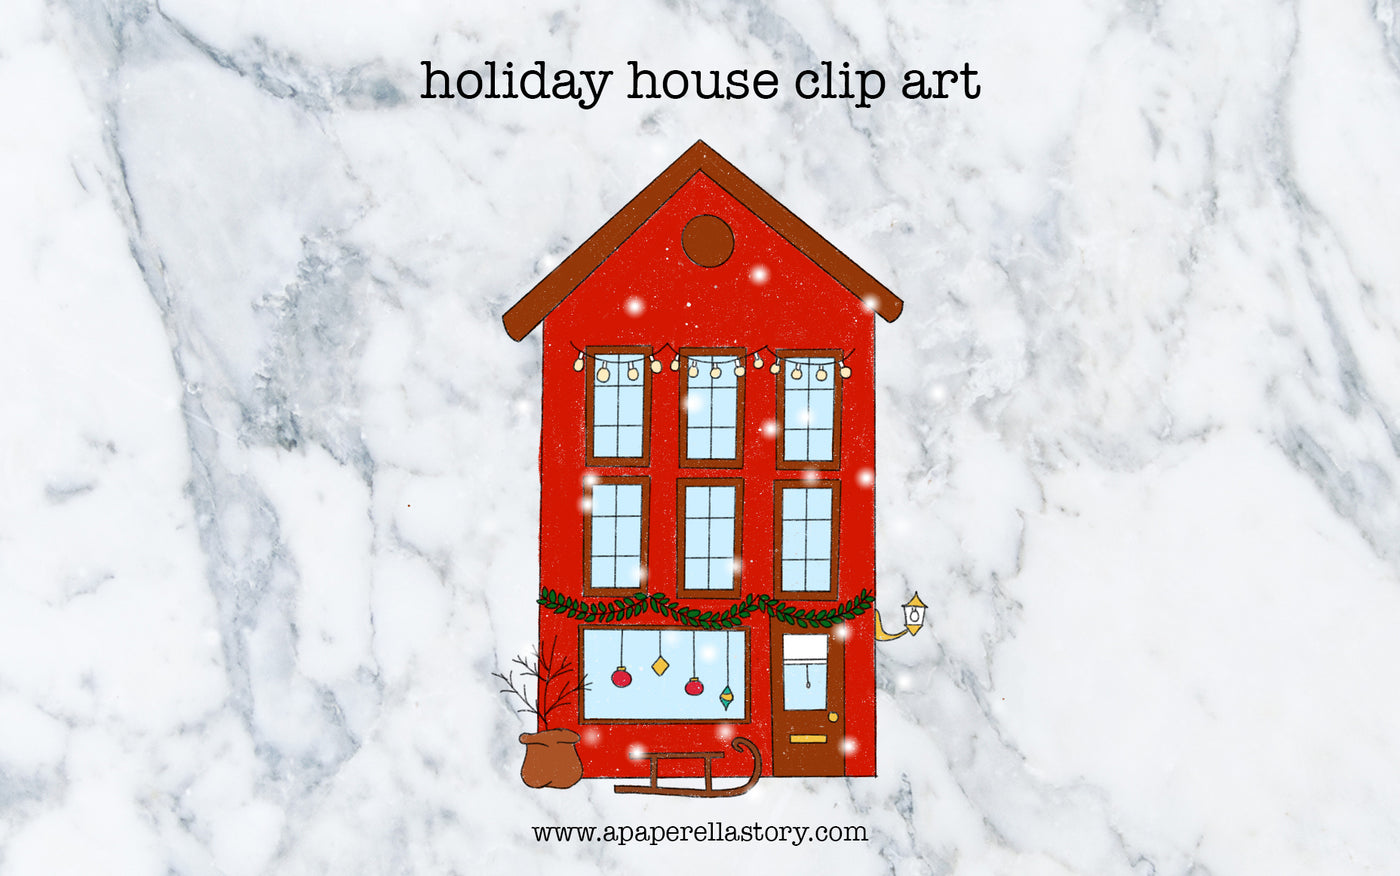 Snowy Holiday House Clip Art - Digital File